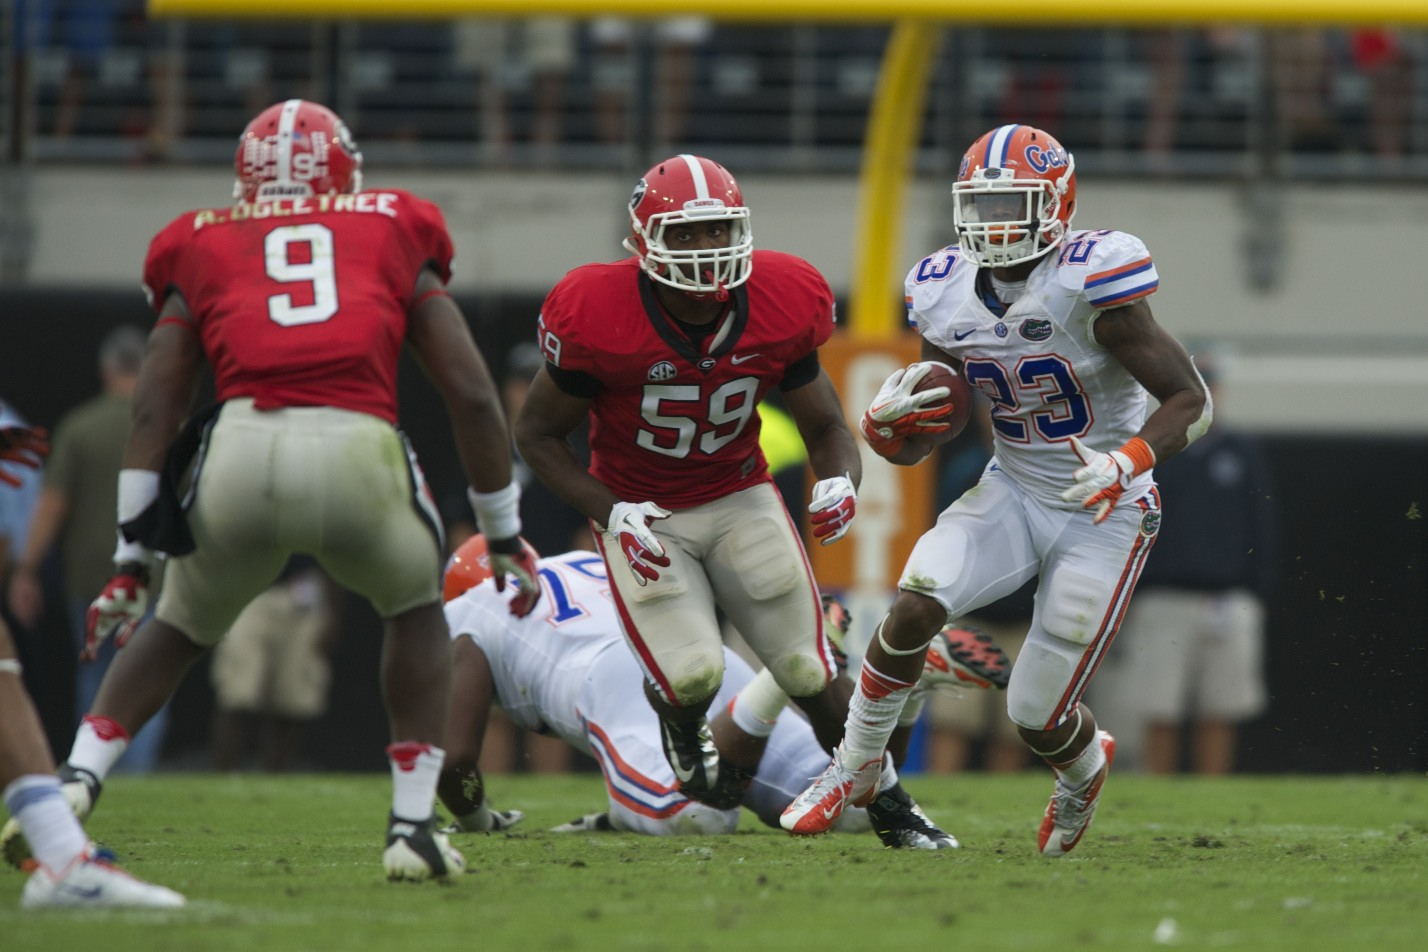 Running back Mike Gillislee gets a first down for the Florida Gators in the first half of Saturday's game.